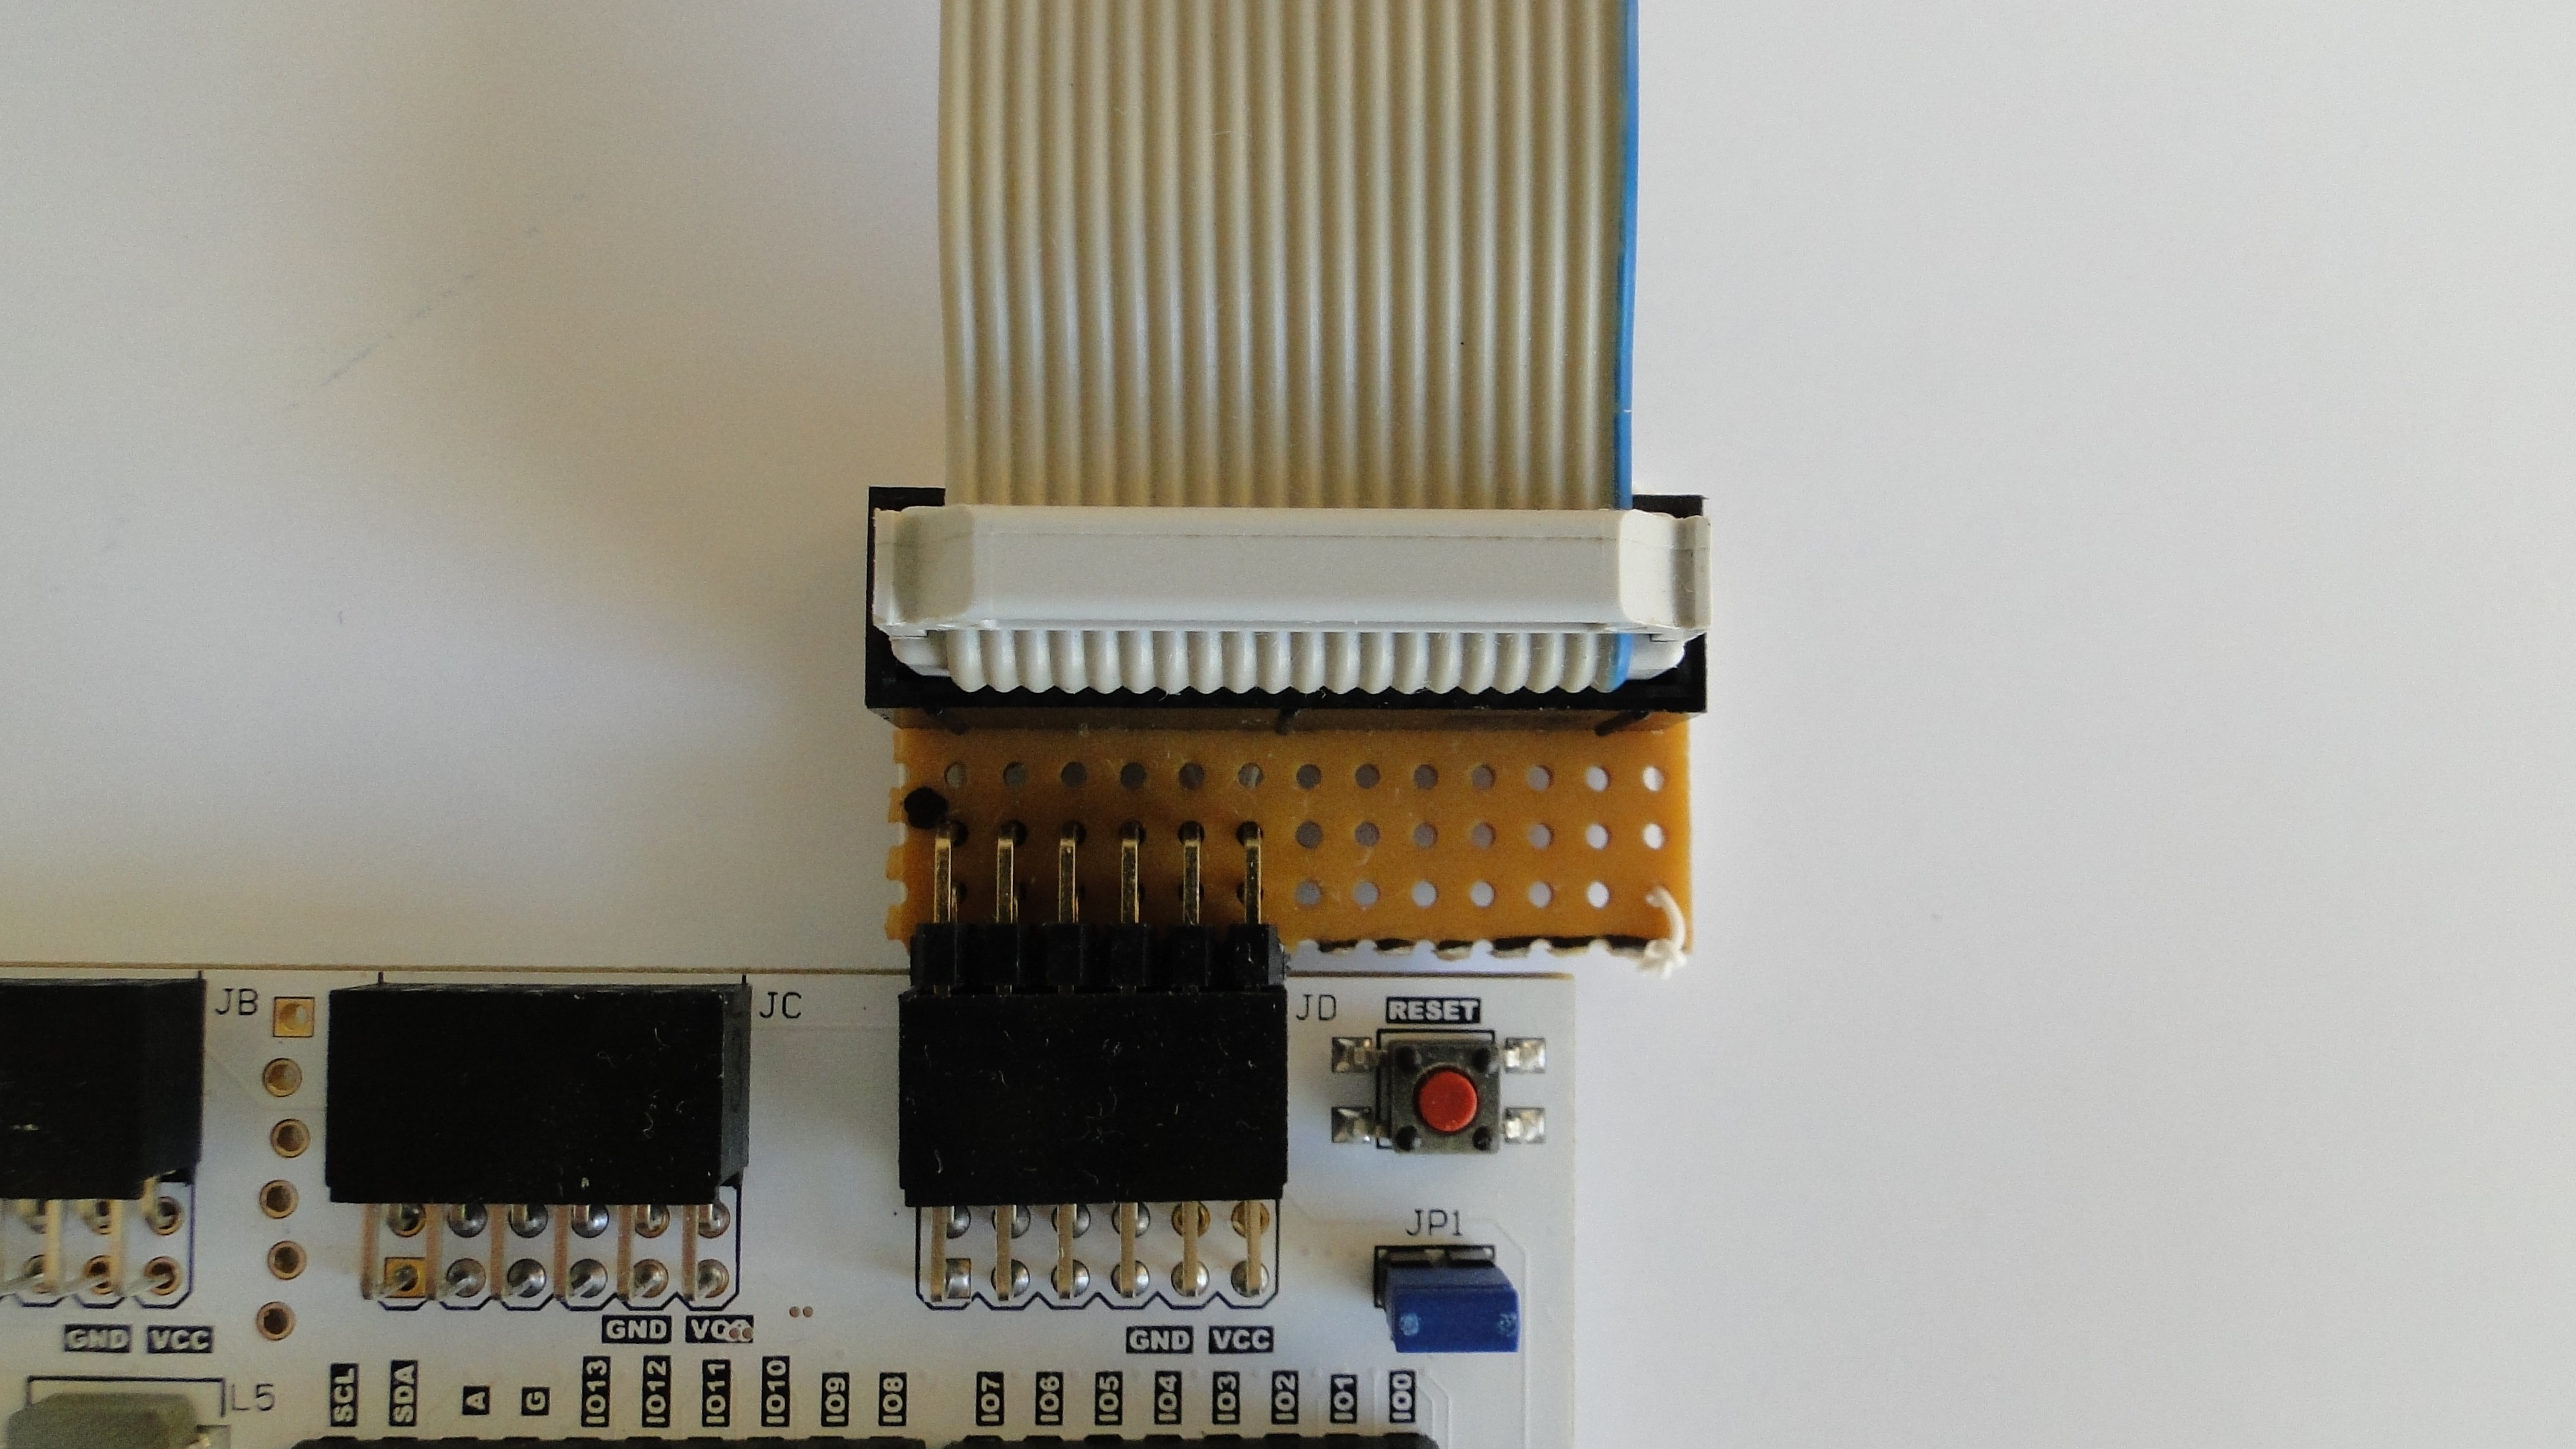 Arty Jtag Adapter Degree Electronics Forum Circuits Projects And Microcontrollers